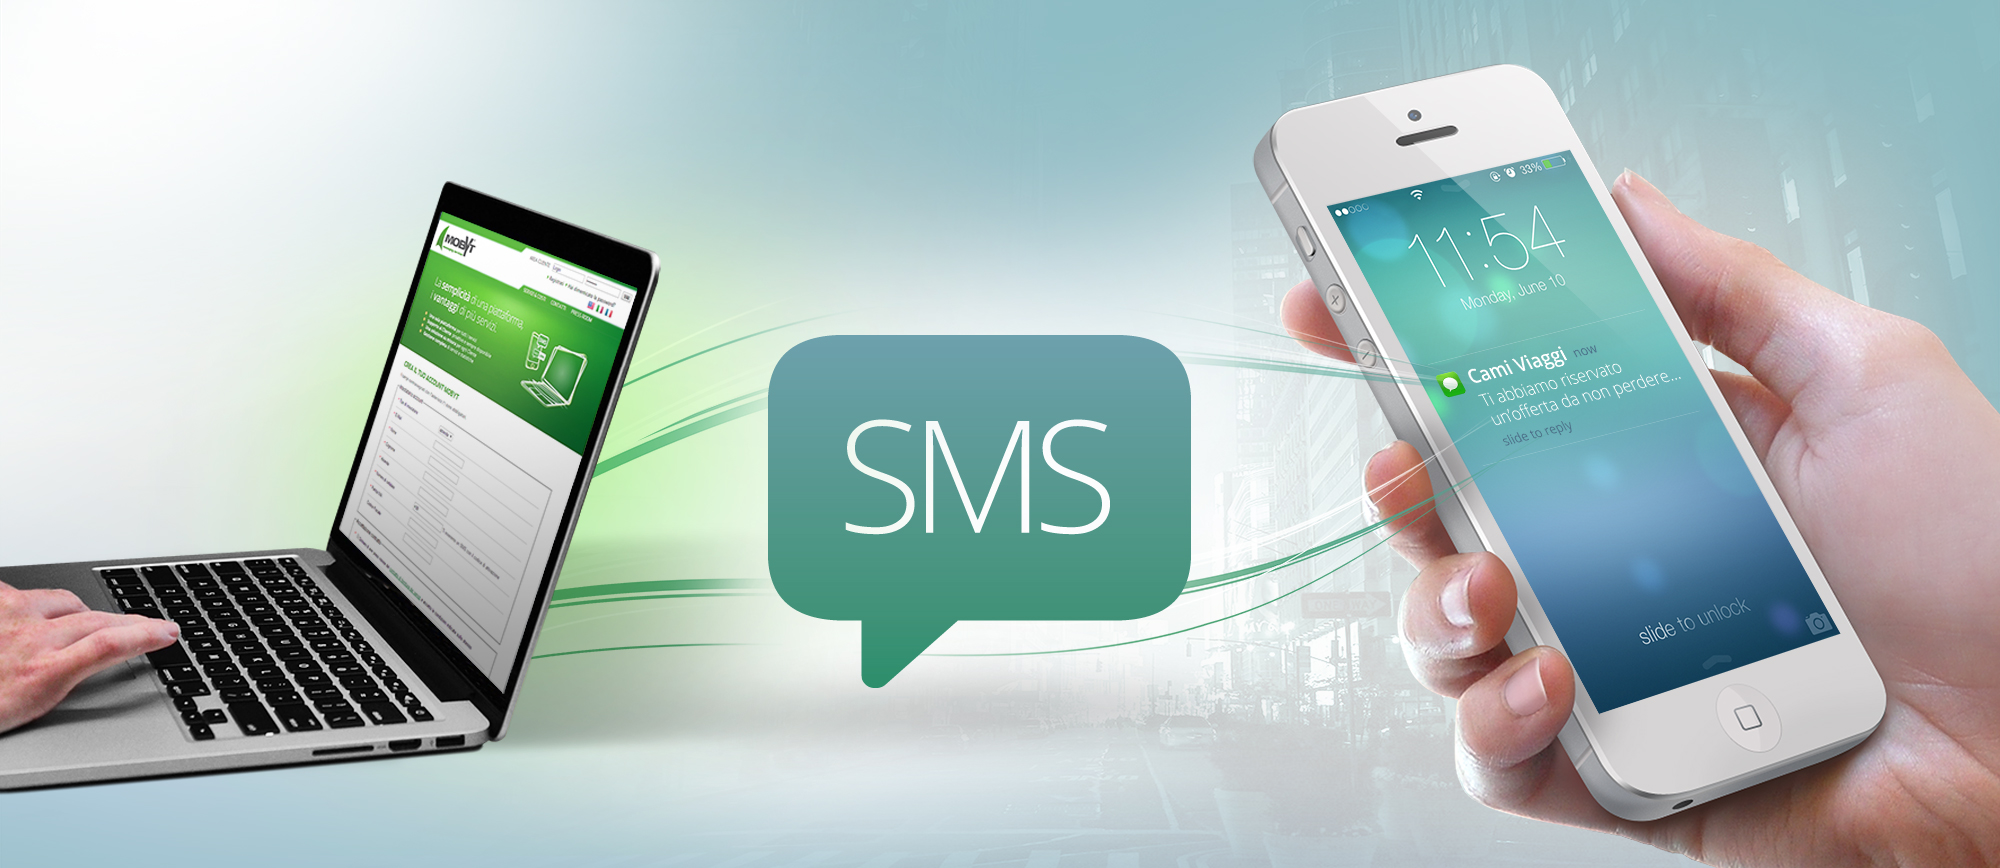 SMS Marketing: come creare campagne di successo